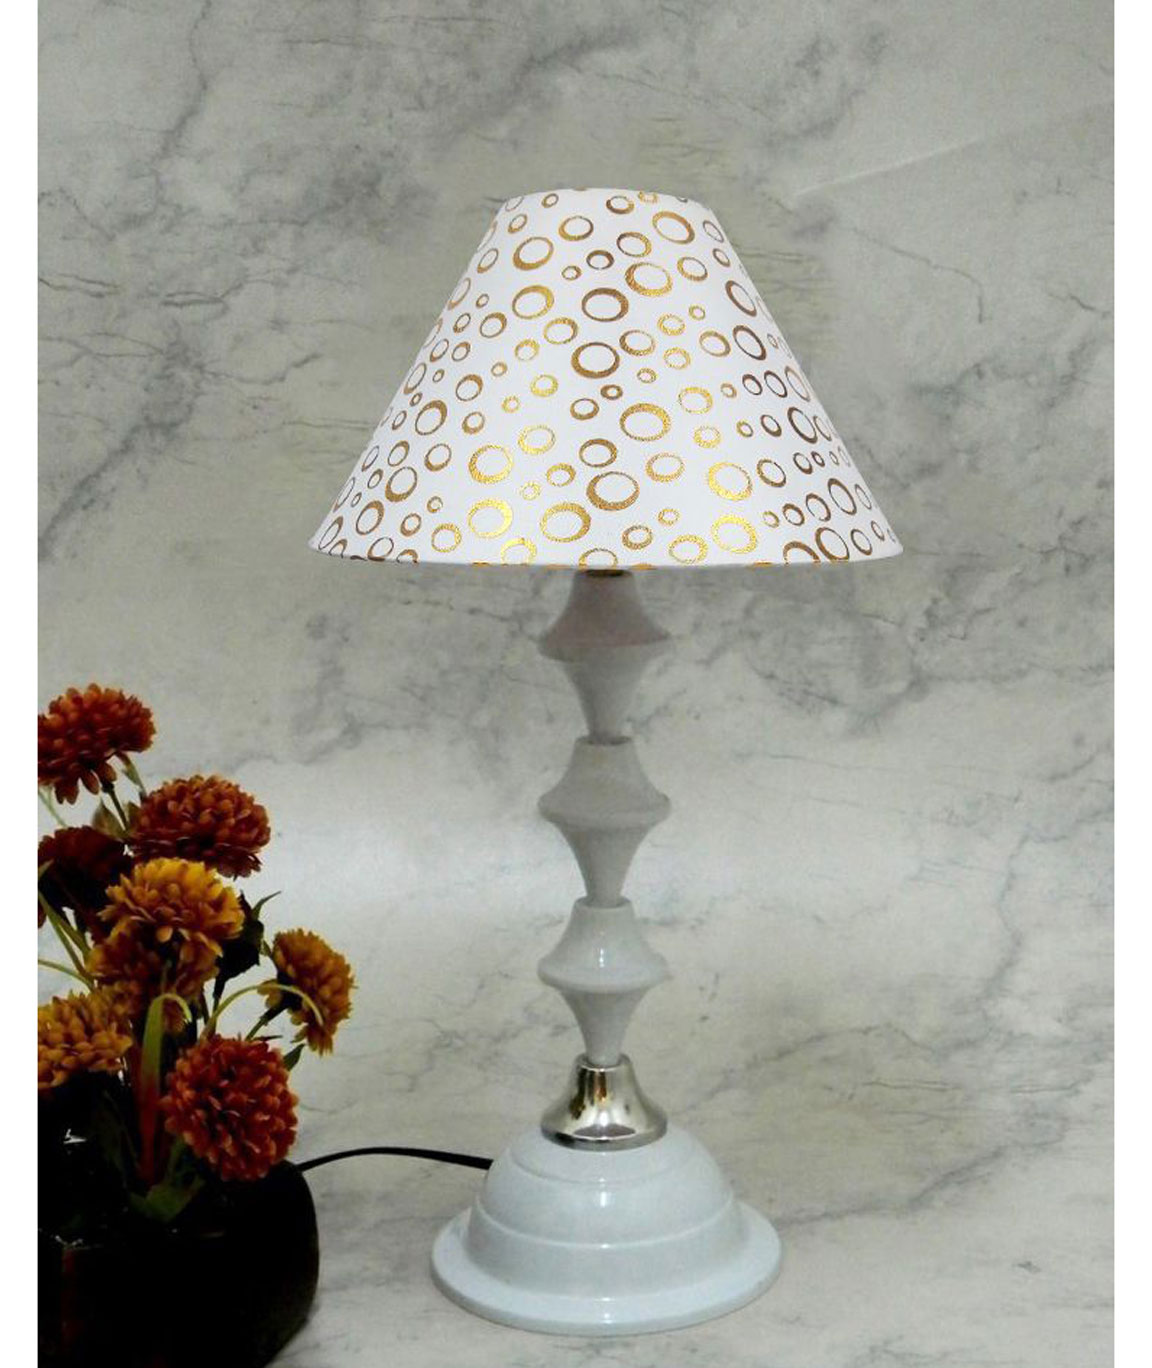 RDC White Silver Table Lamp with 10 Inches Round White Golden Polka Dots Designer Lamp Shade